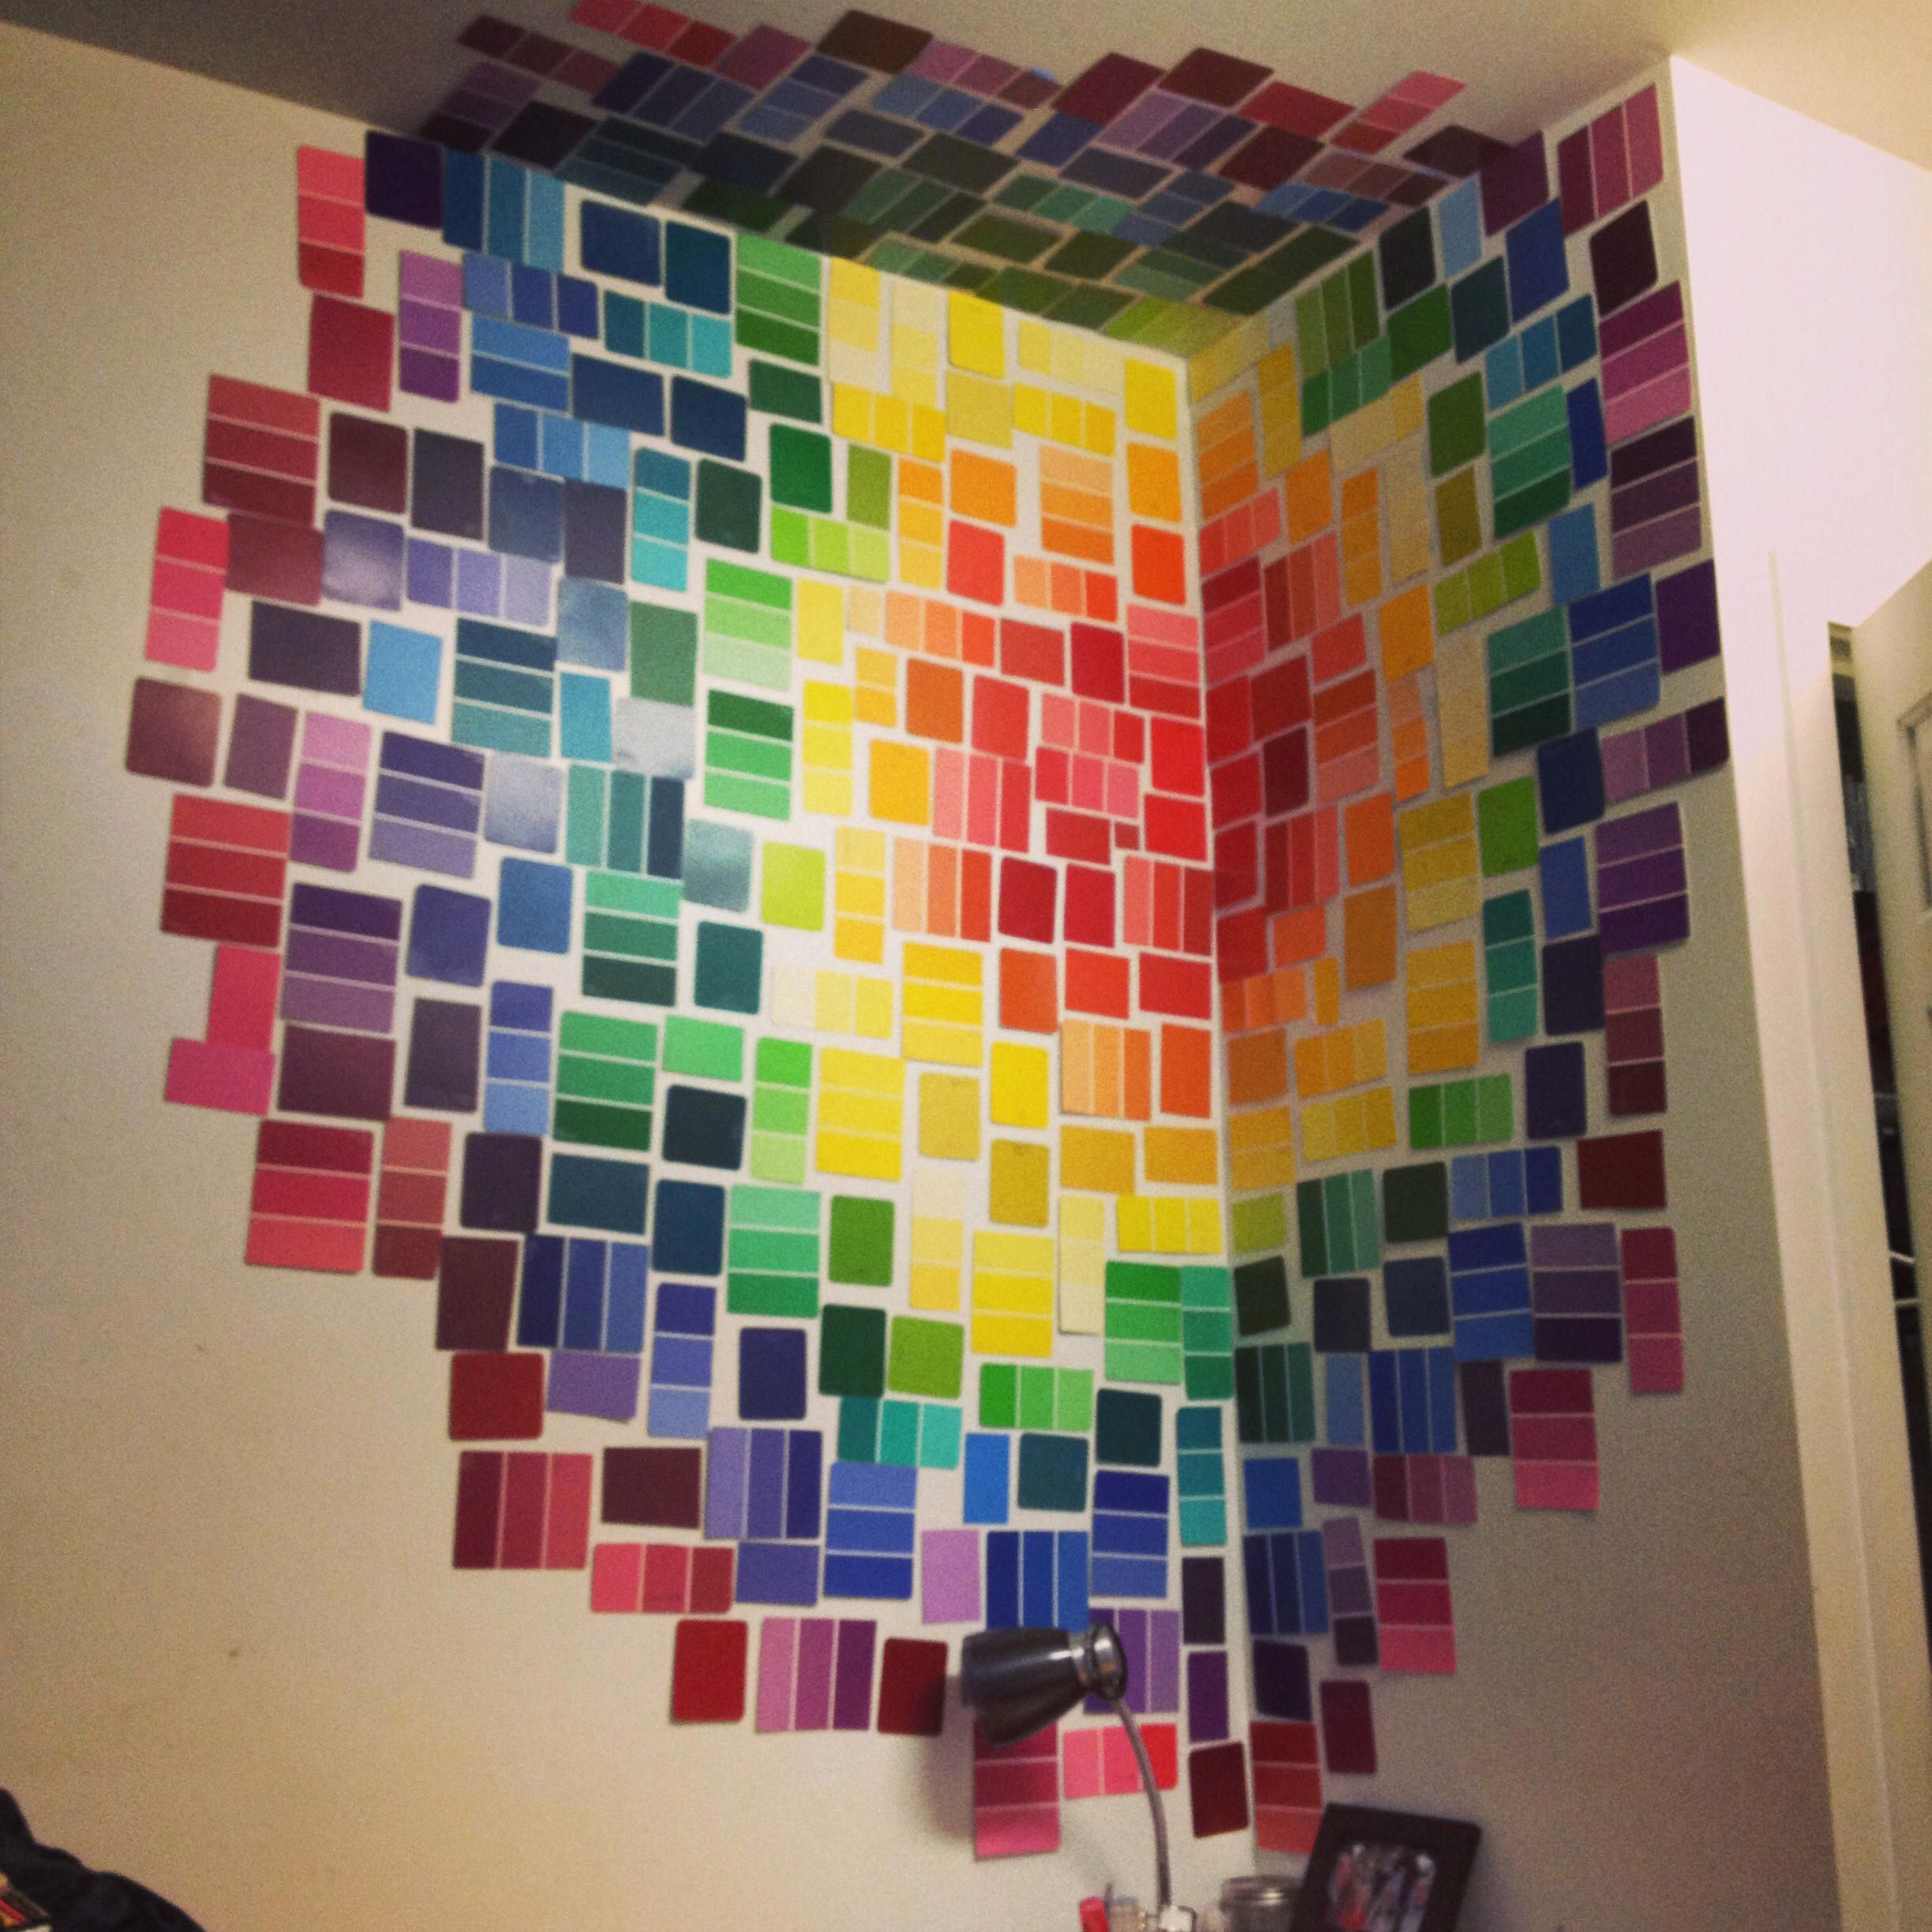 Paint Strips With Painters Tape Simple And Easy To Change Designs Or Clear It Off At The End Of The Year College Wall Art Paint Sample Art Dorm Decorations